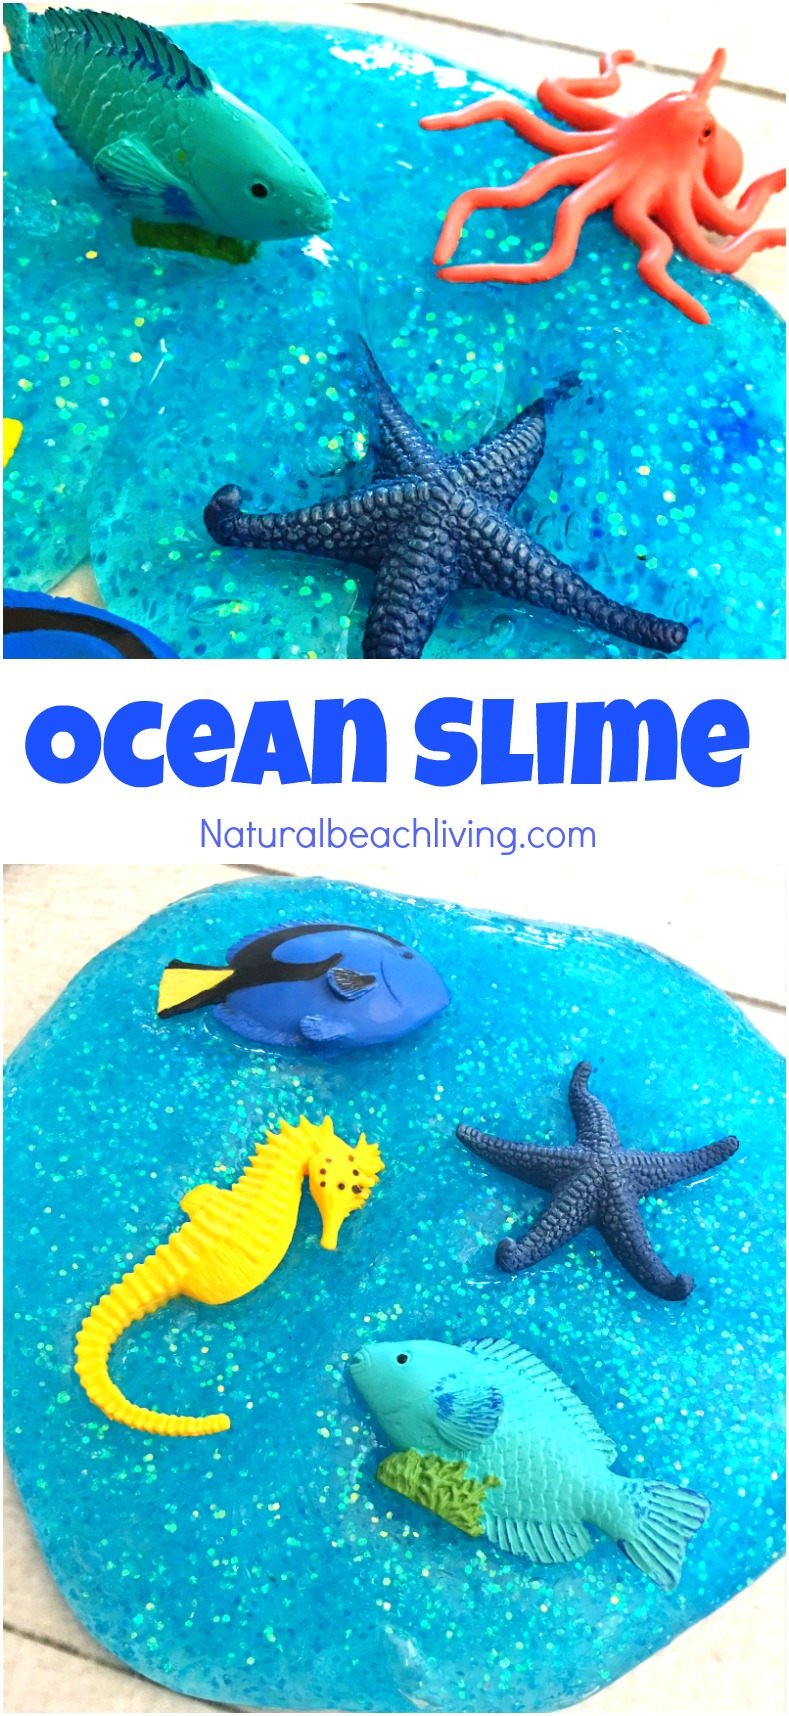 Best Ocean Theme Recipe for Slime, Ocean Slime Recipes, Jiggly Slime, Under the Sea Theme Activities, How to Make Slime, Perfect Glittery Slime Recipe for Kids, Ocean Activities #slimerecipe #slime